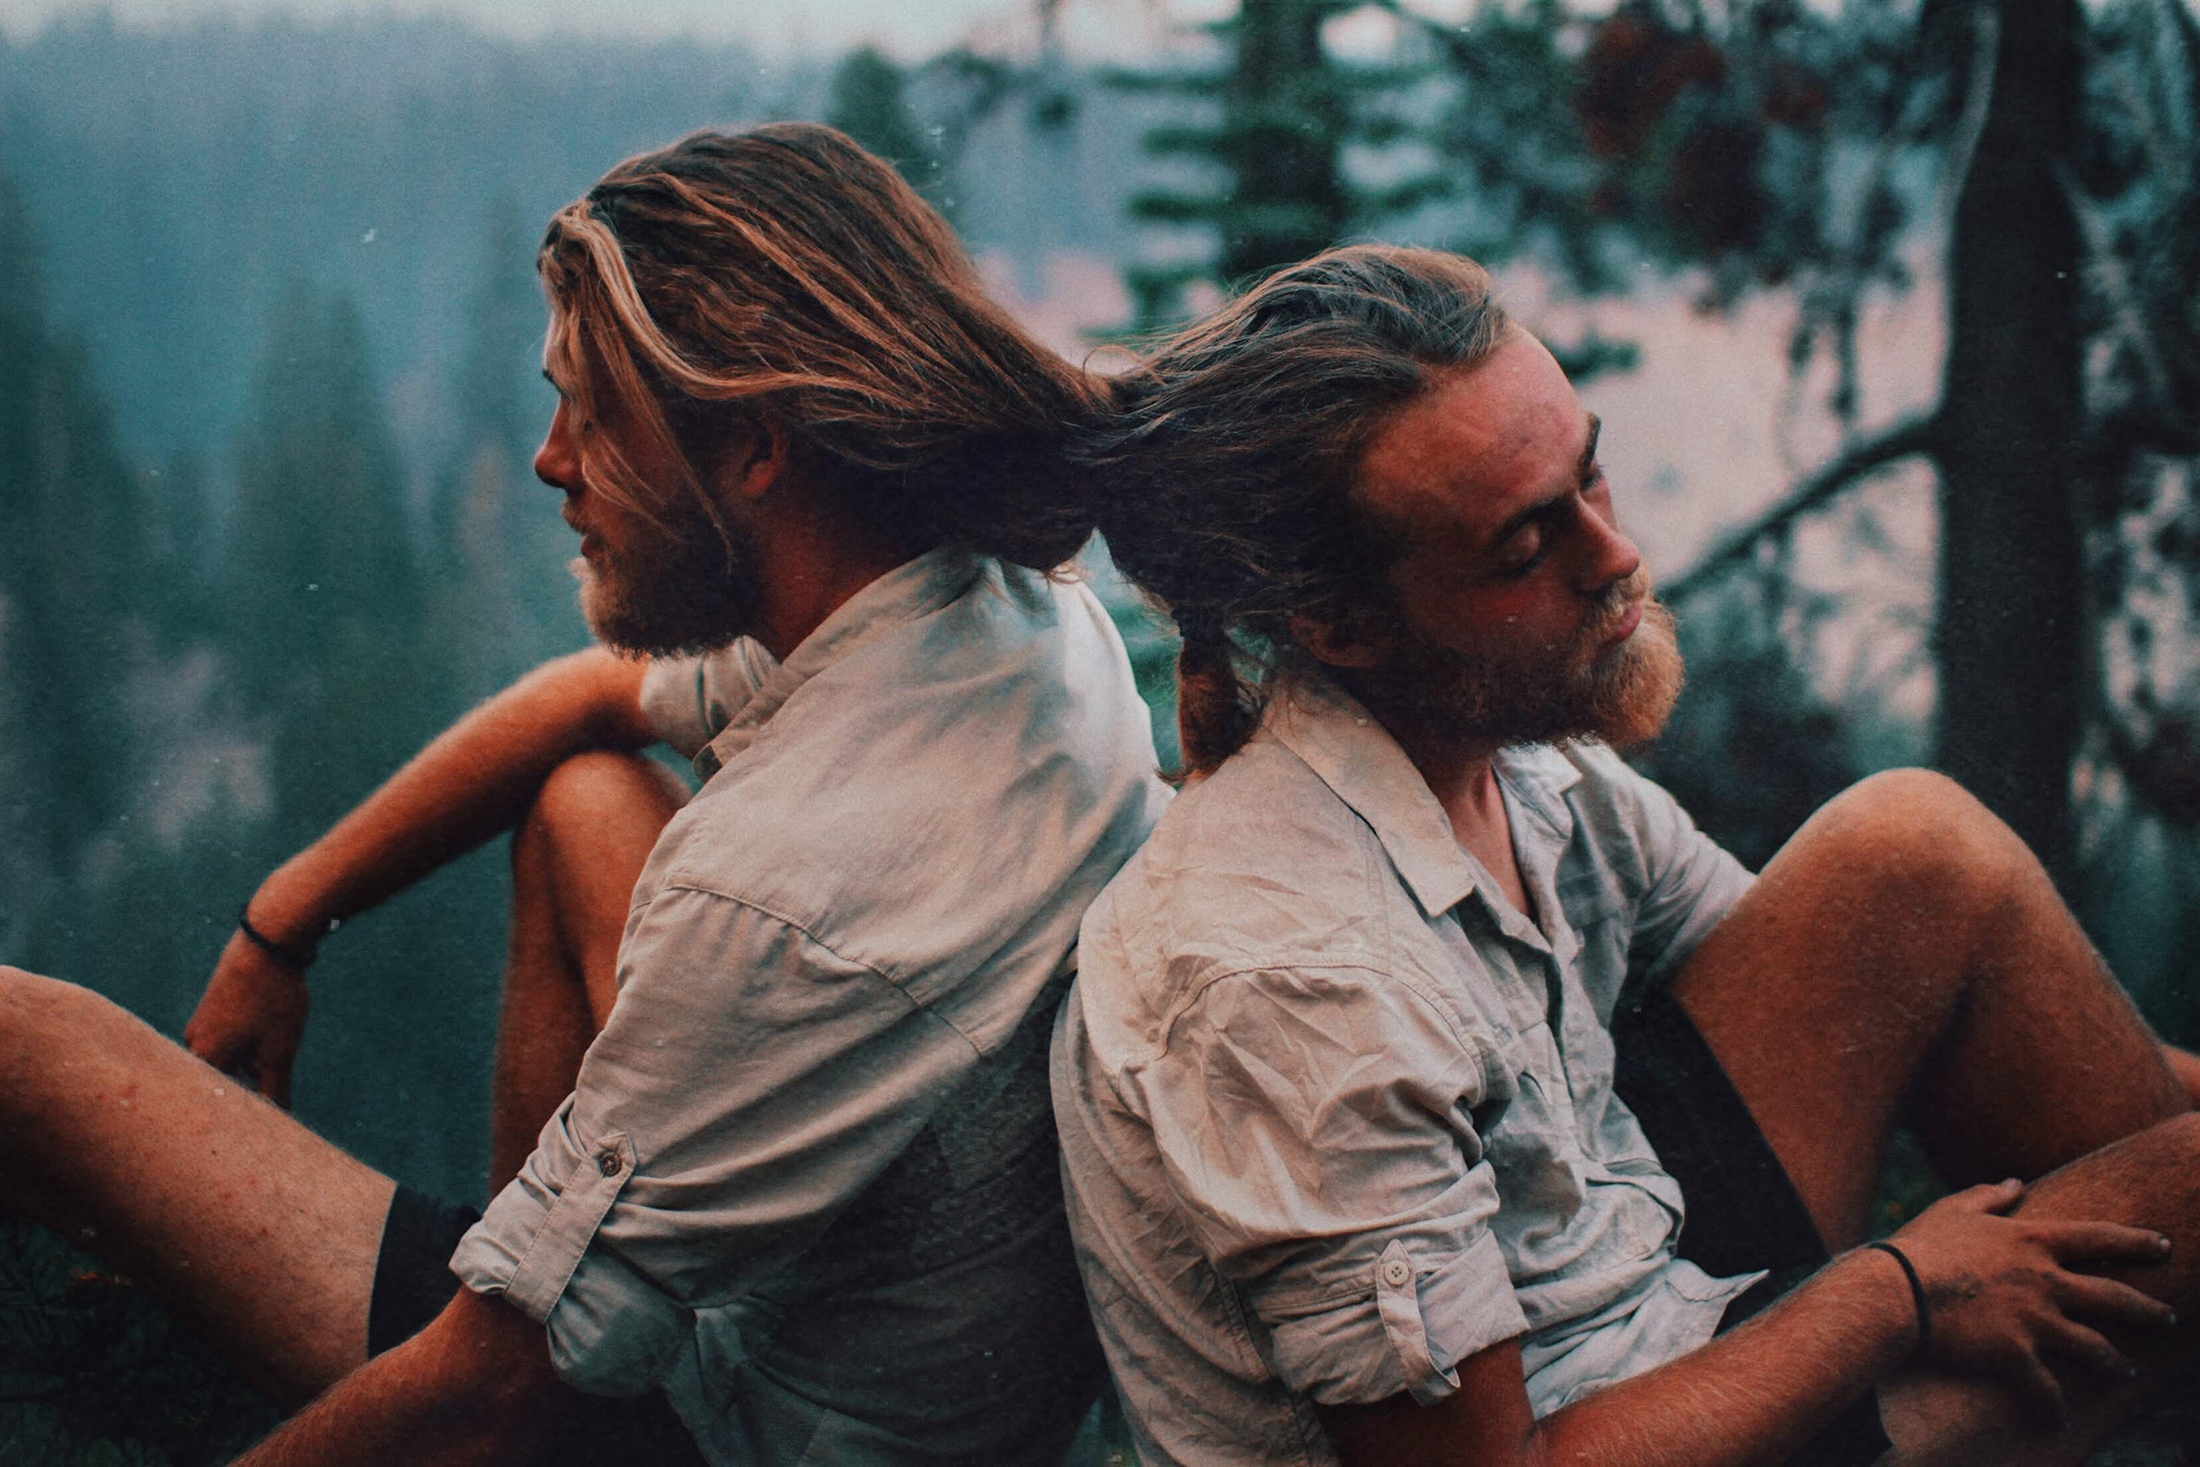 Two men sitting on the PCT with their hair tied together